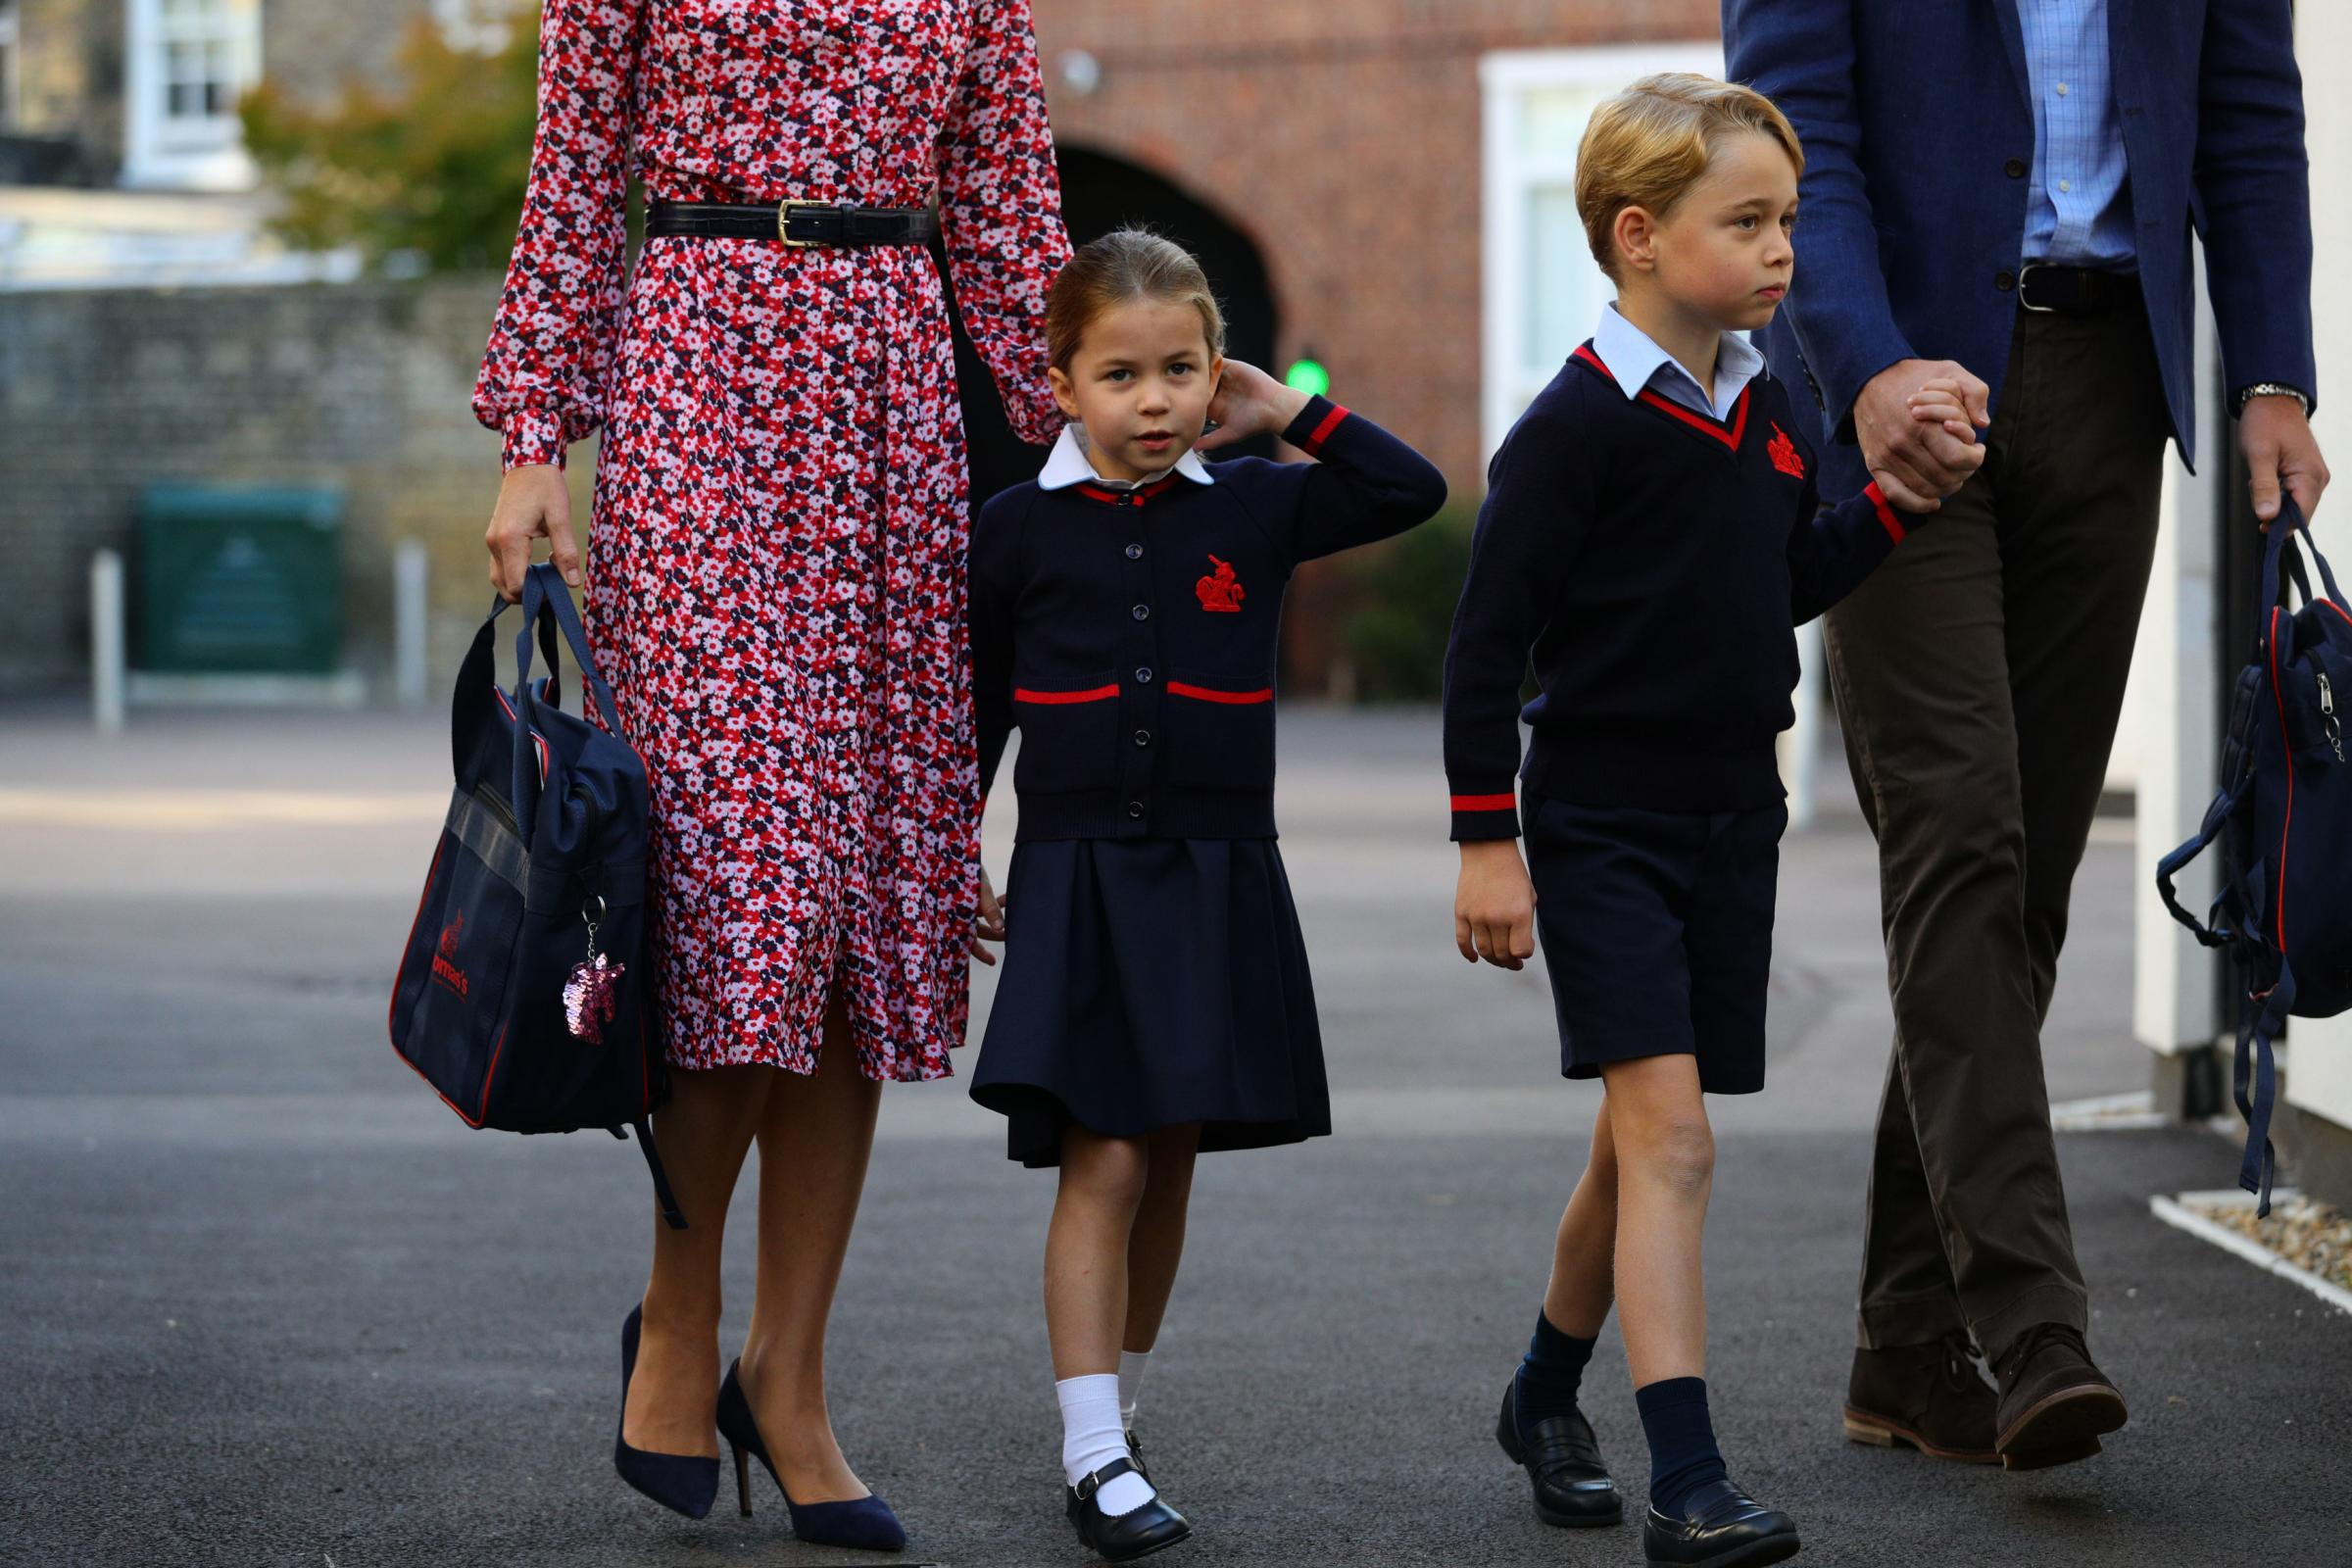 PICTURES: Princess Charlotte begins first day of school in Battersea